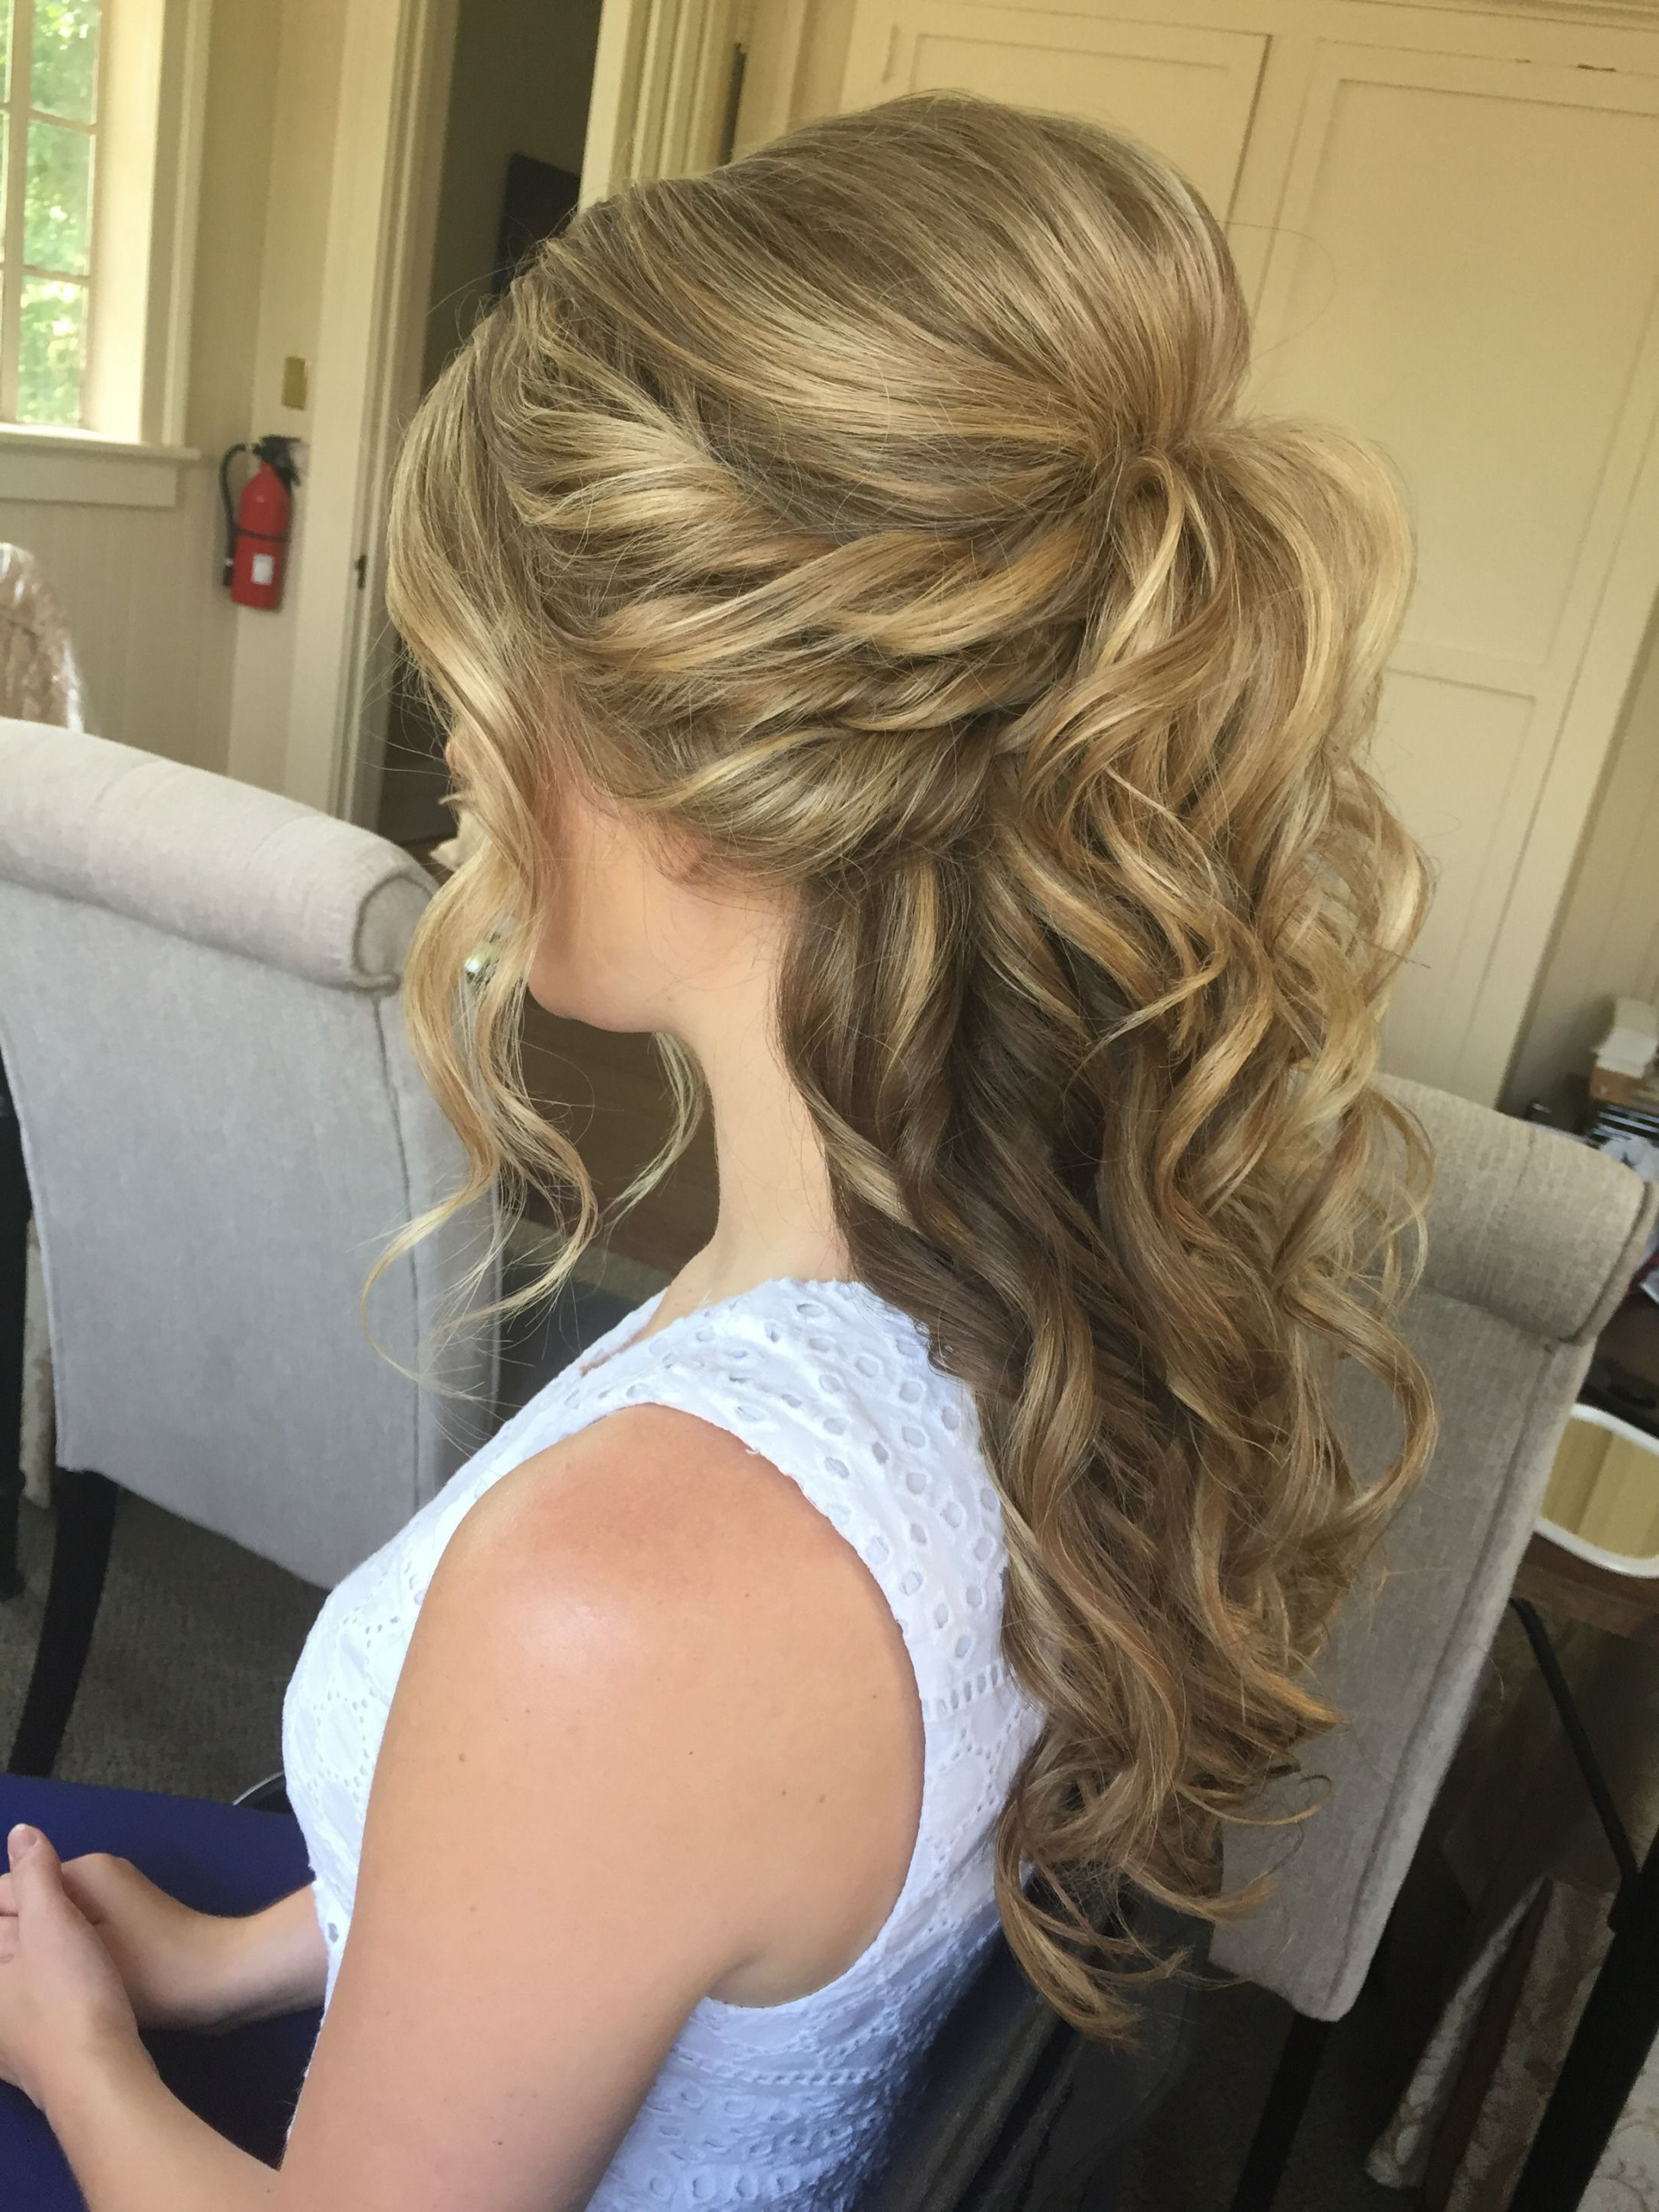 Newest Down Medium Hairstyles Regarding Image Result For Wedding Hairstyles Half Up Half Down Medium Length (View 3 of 20)